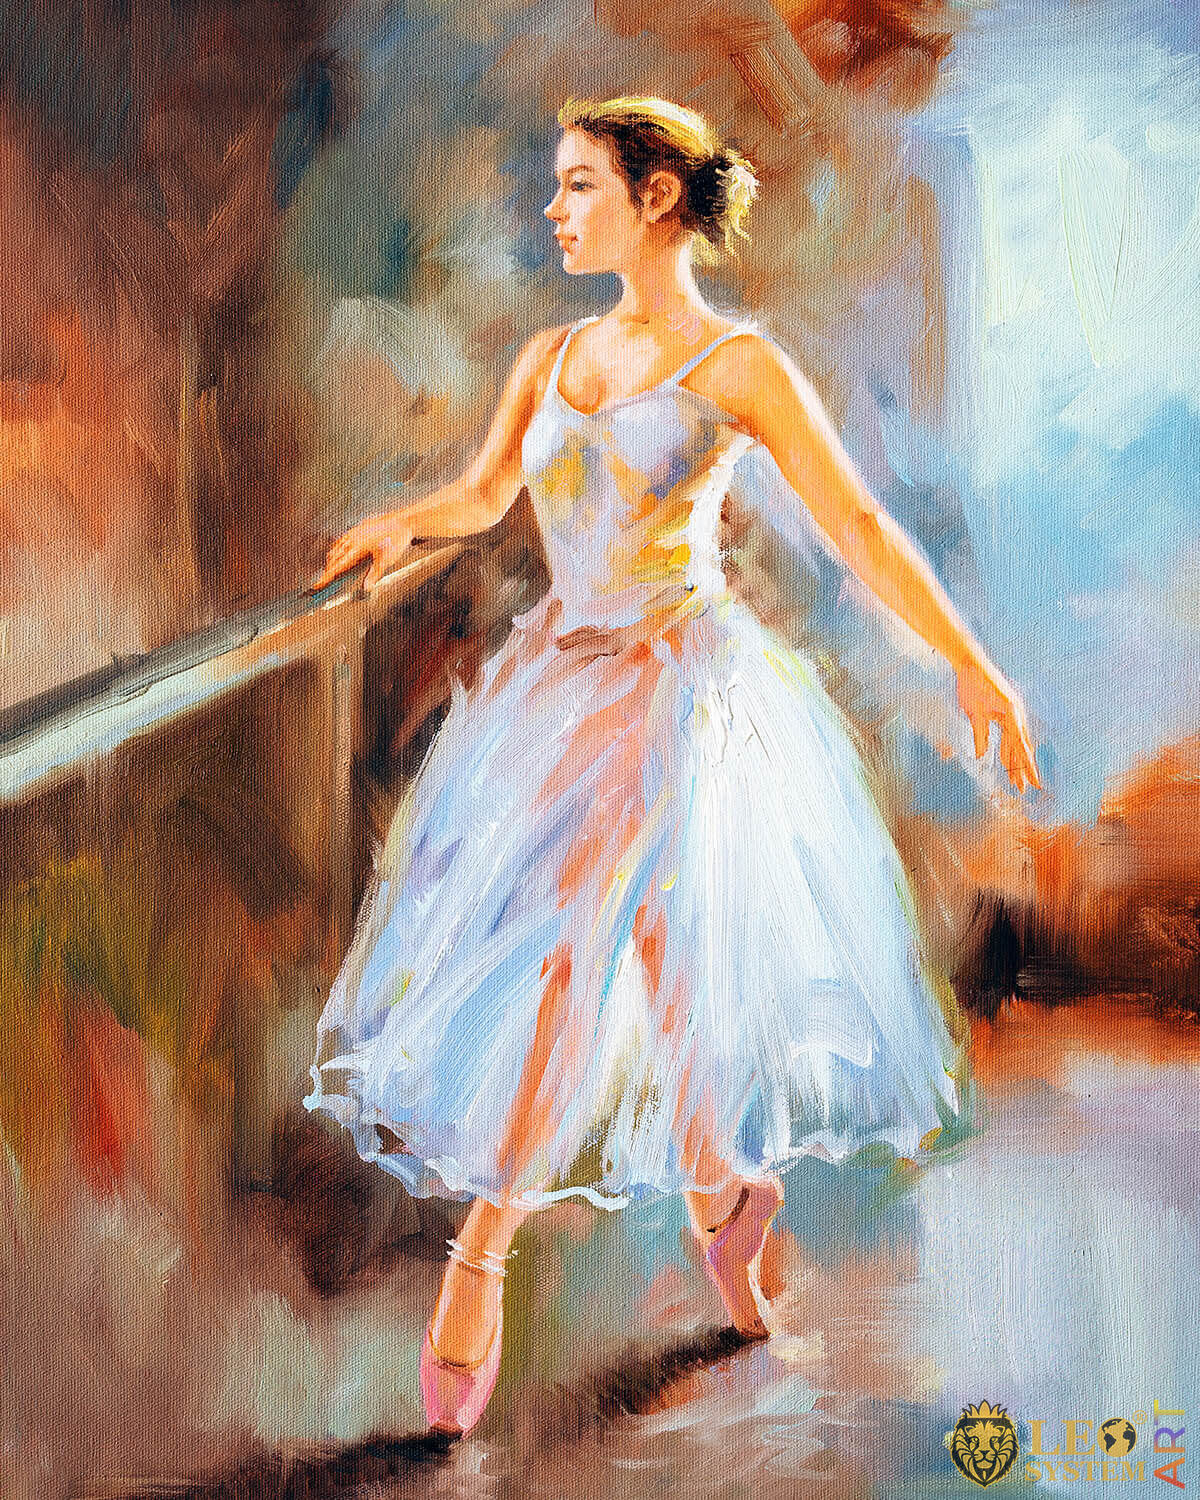 Attractive ballerina walks in pointe shoes, original oil painting